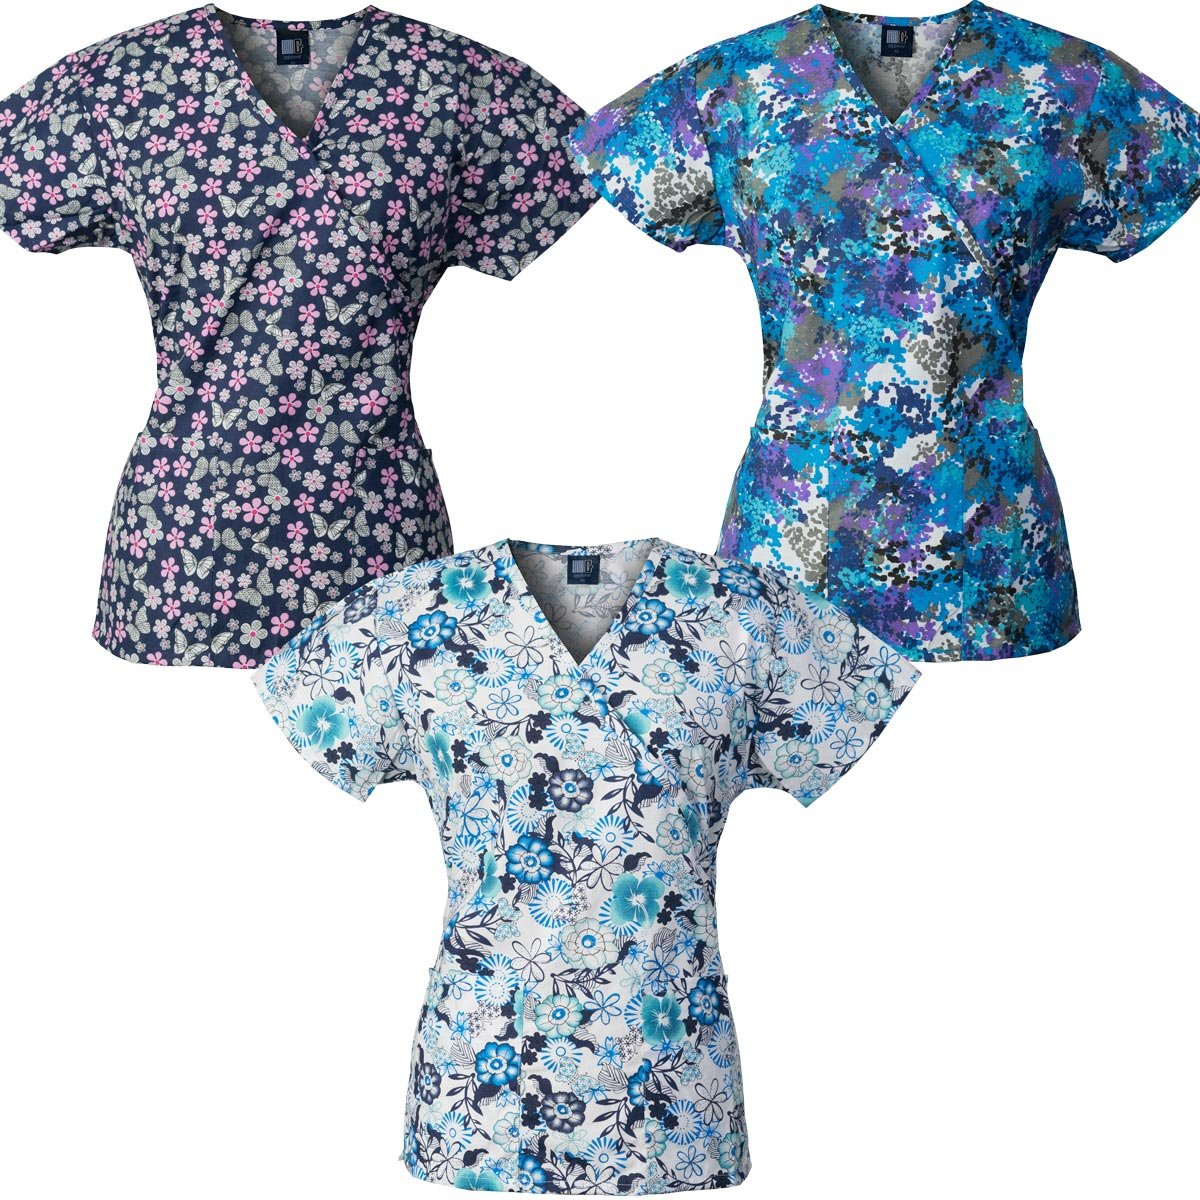 Medgear 3-Pack Womens Fashion Scrub Tops Mock-Wrap Style with Back Ties (L)